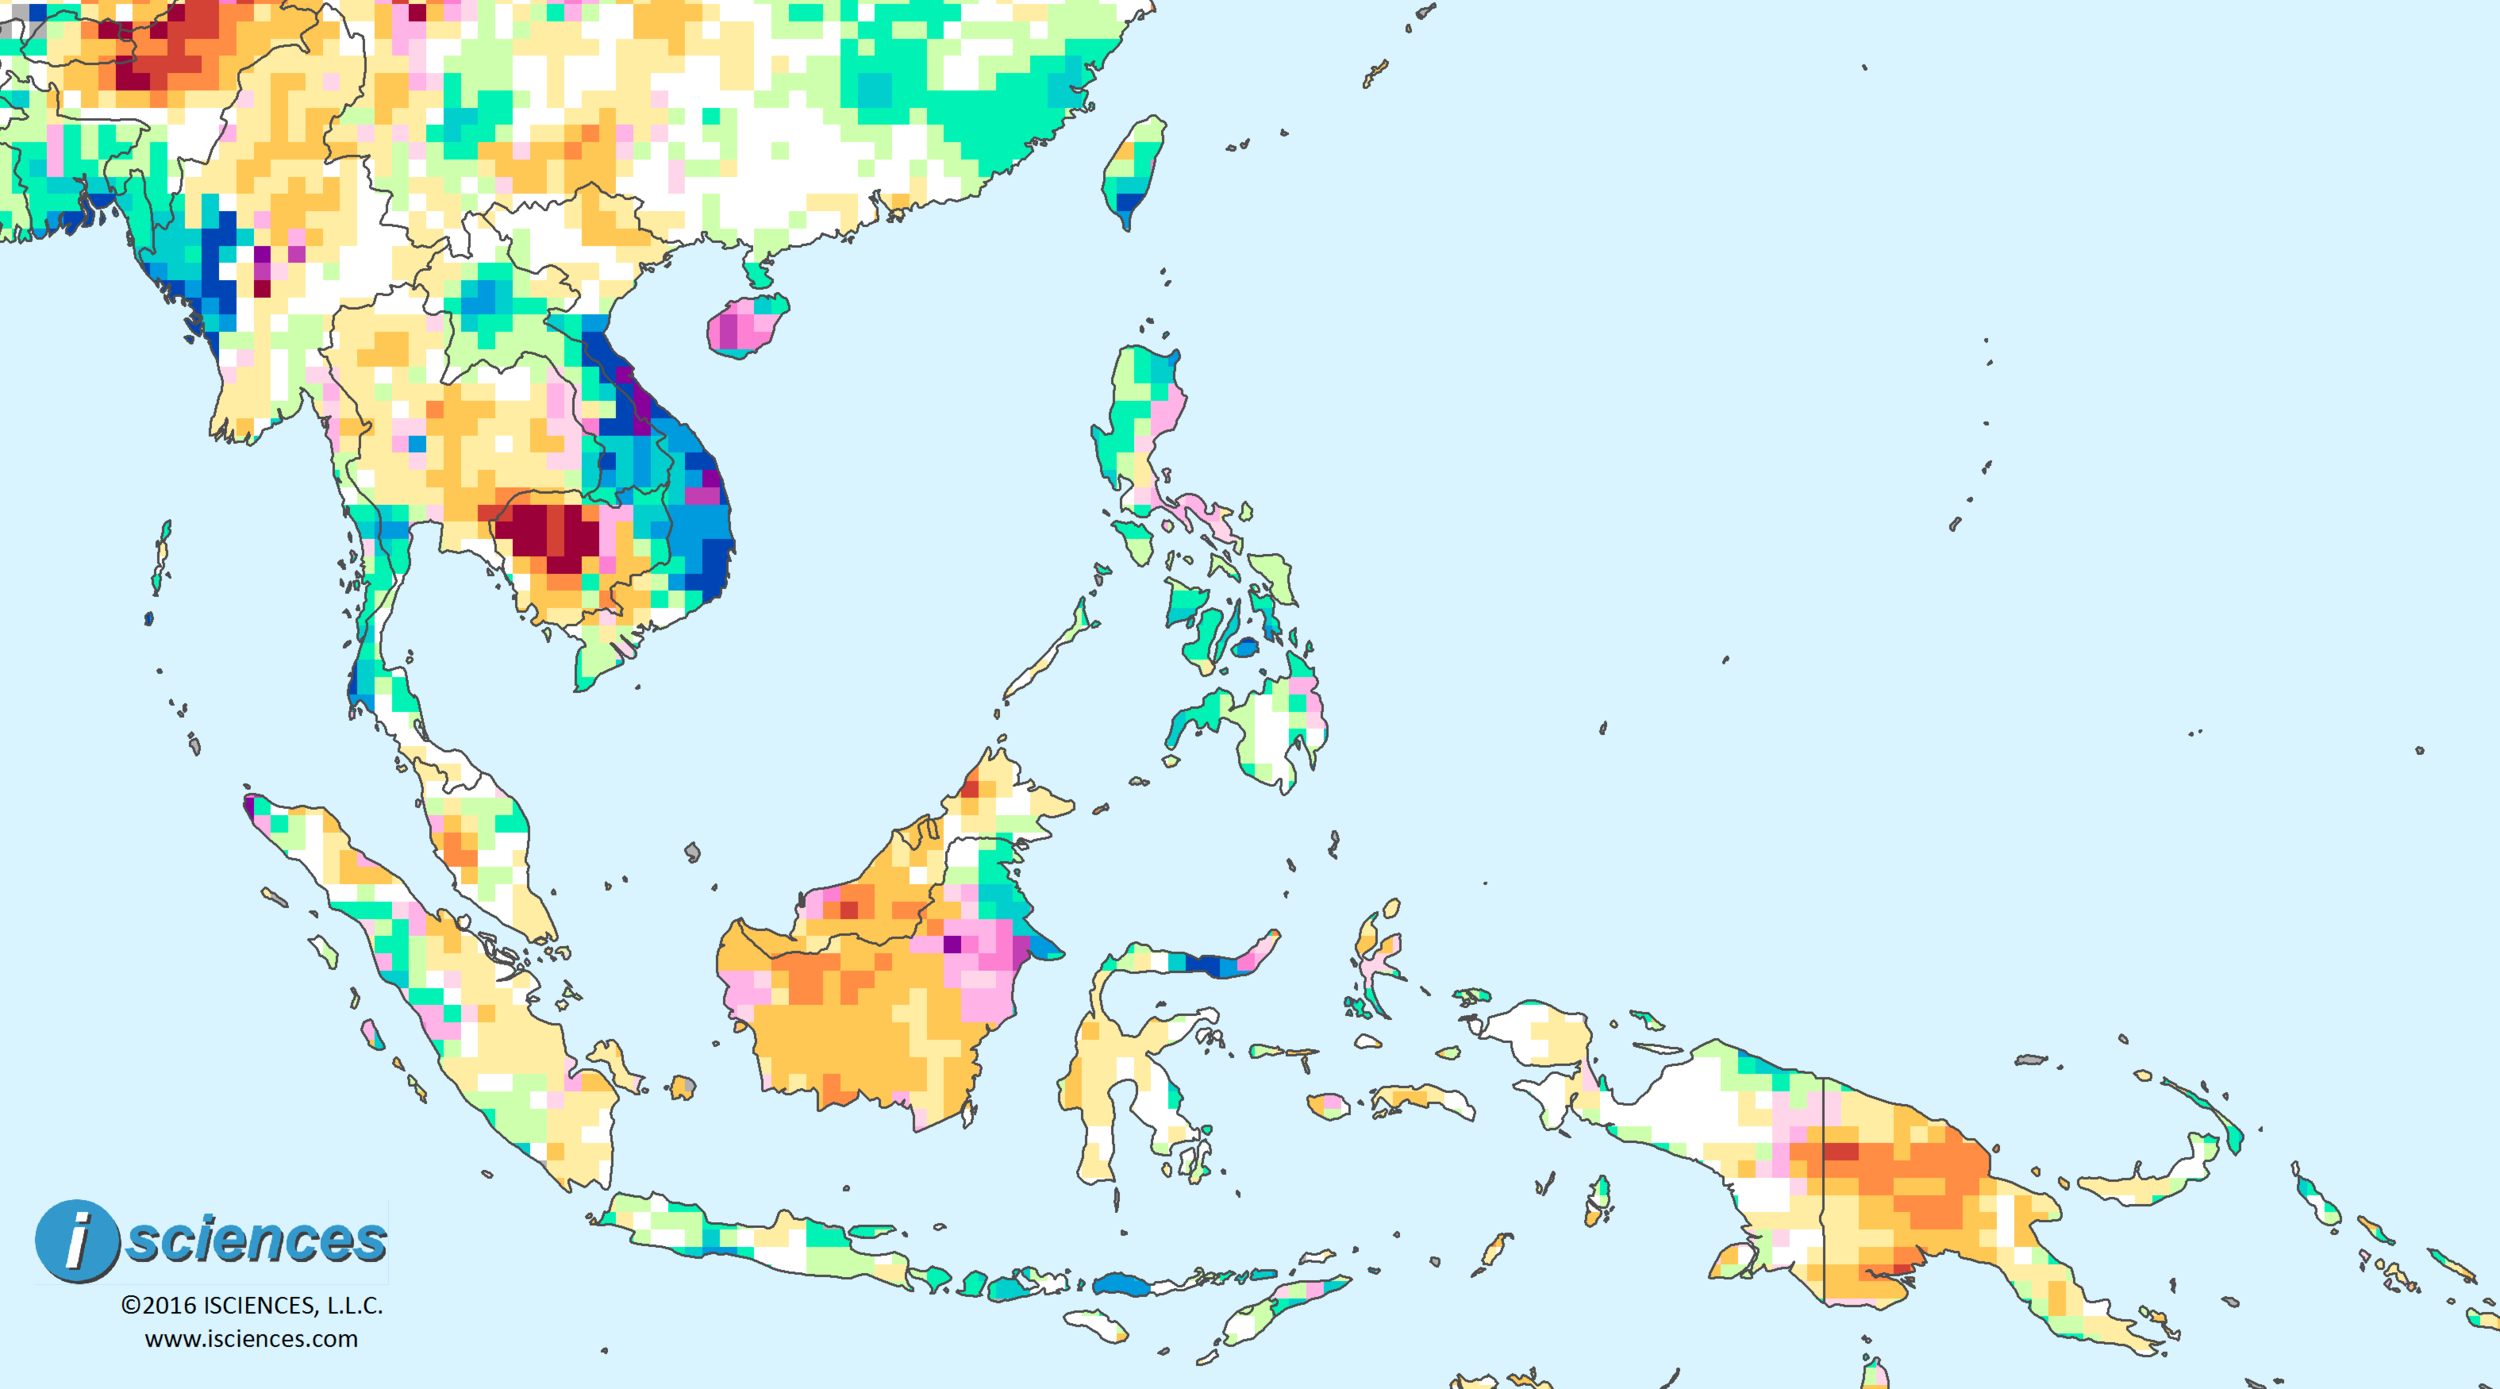 Southeast Asia & the Pacific: Water surpluses in Laos ... on sumatra map, indus river map, malay archipelago, india map, sabah map, strait of malacca, cuba map, arabian peninsula, philippines map, malaysia map, east indies, indonesia map, singapore map, gobi desert on map, east timor map, japan map, peninsular malaysia, persian gulf map, cambodia map, malay language, malay people, laos map, kra isthmus, great sandy desert map, borneo map, cape of good hope map, java on map, maldives map,